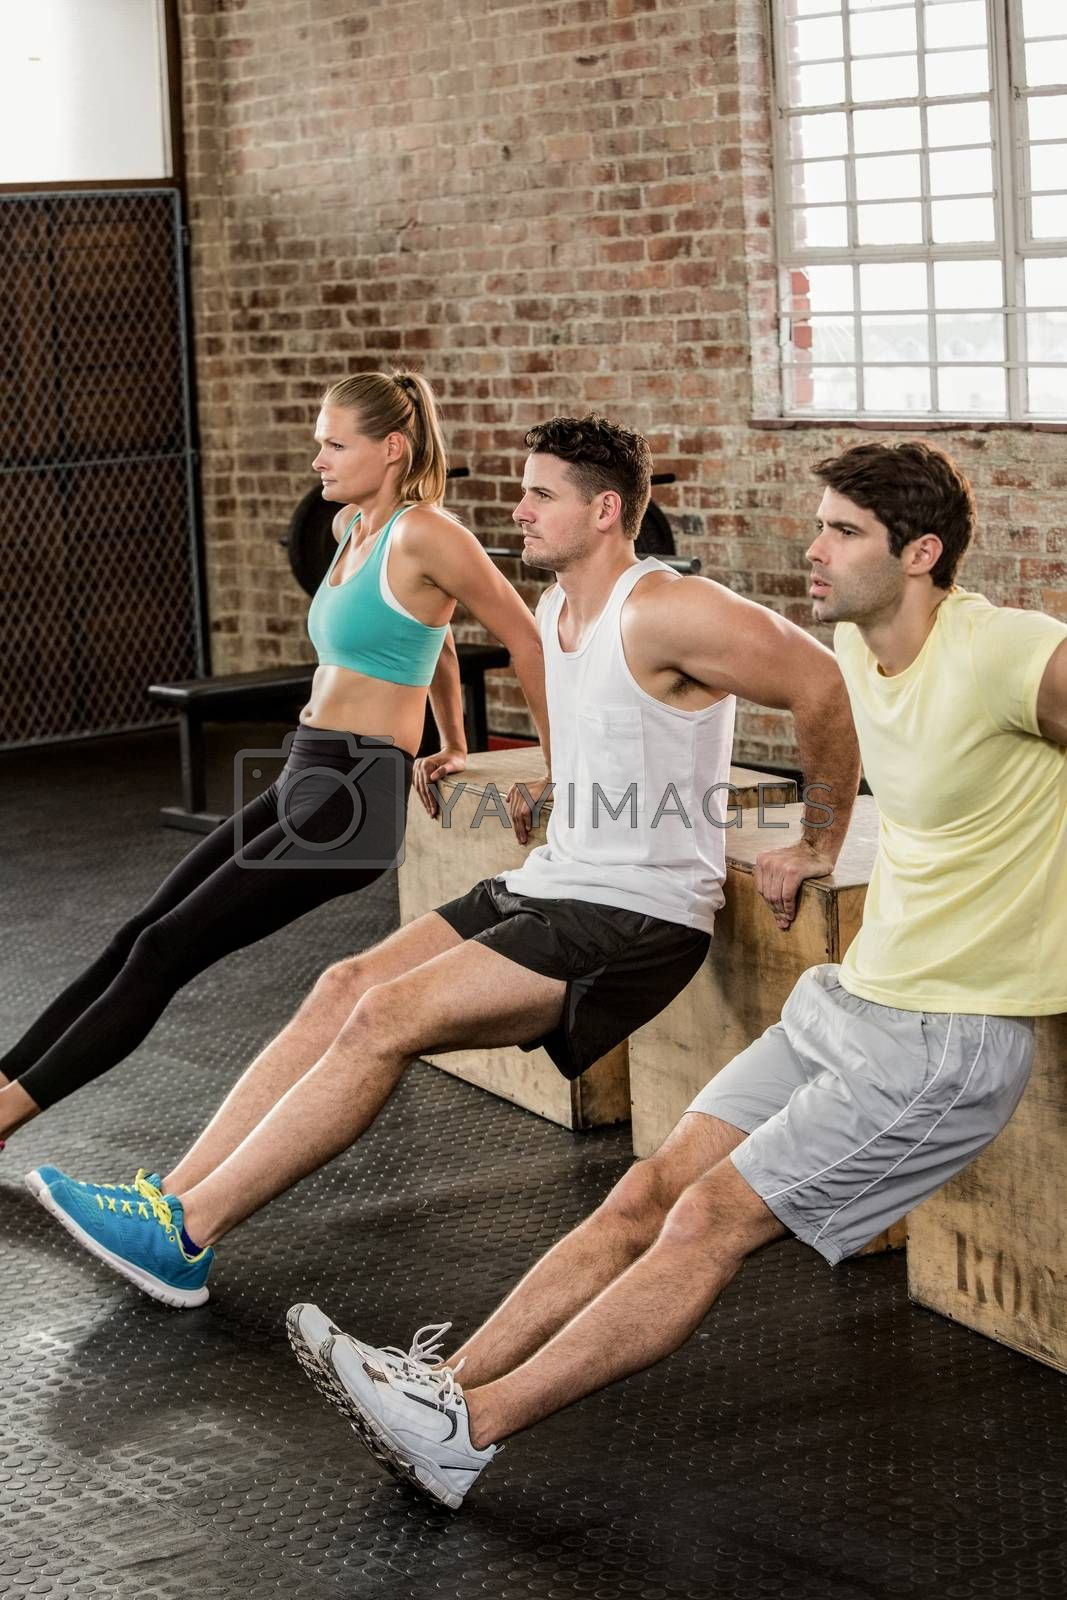 People holding ply box and exercising